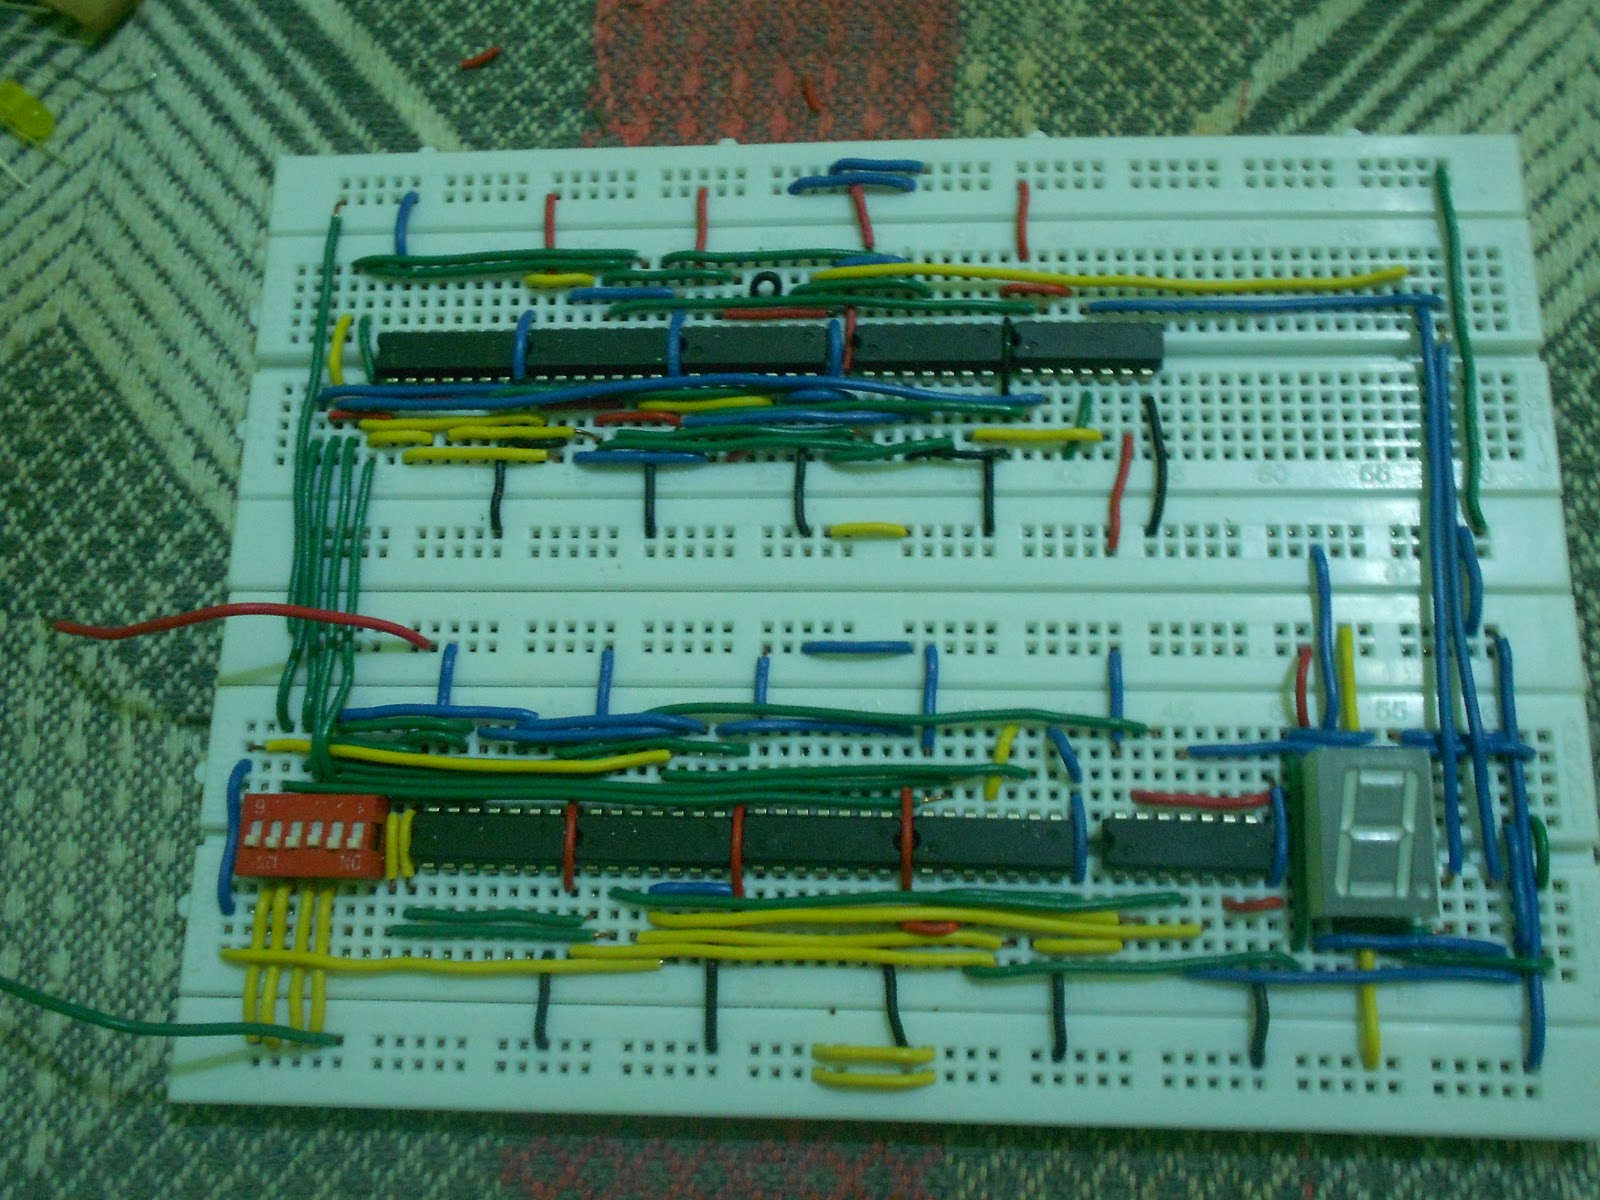 Ece Logic Circuit 2012 Bistable Schematicjpg Finally Here Is The Final Output After Implementing Our Schematic Diagram Into Breadboard